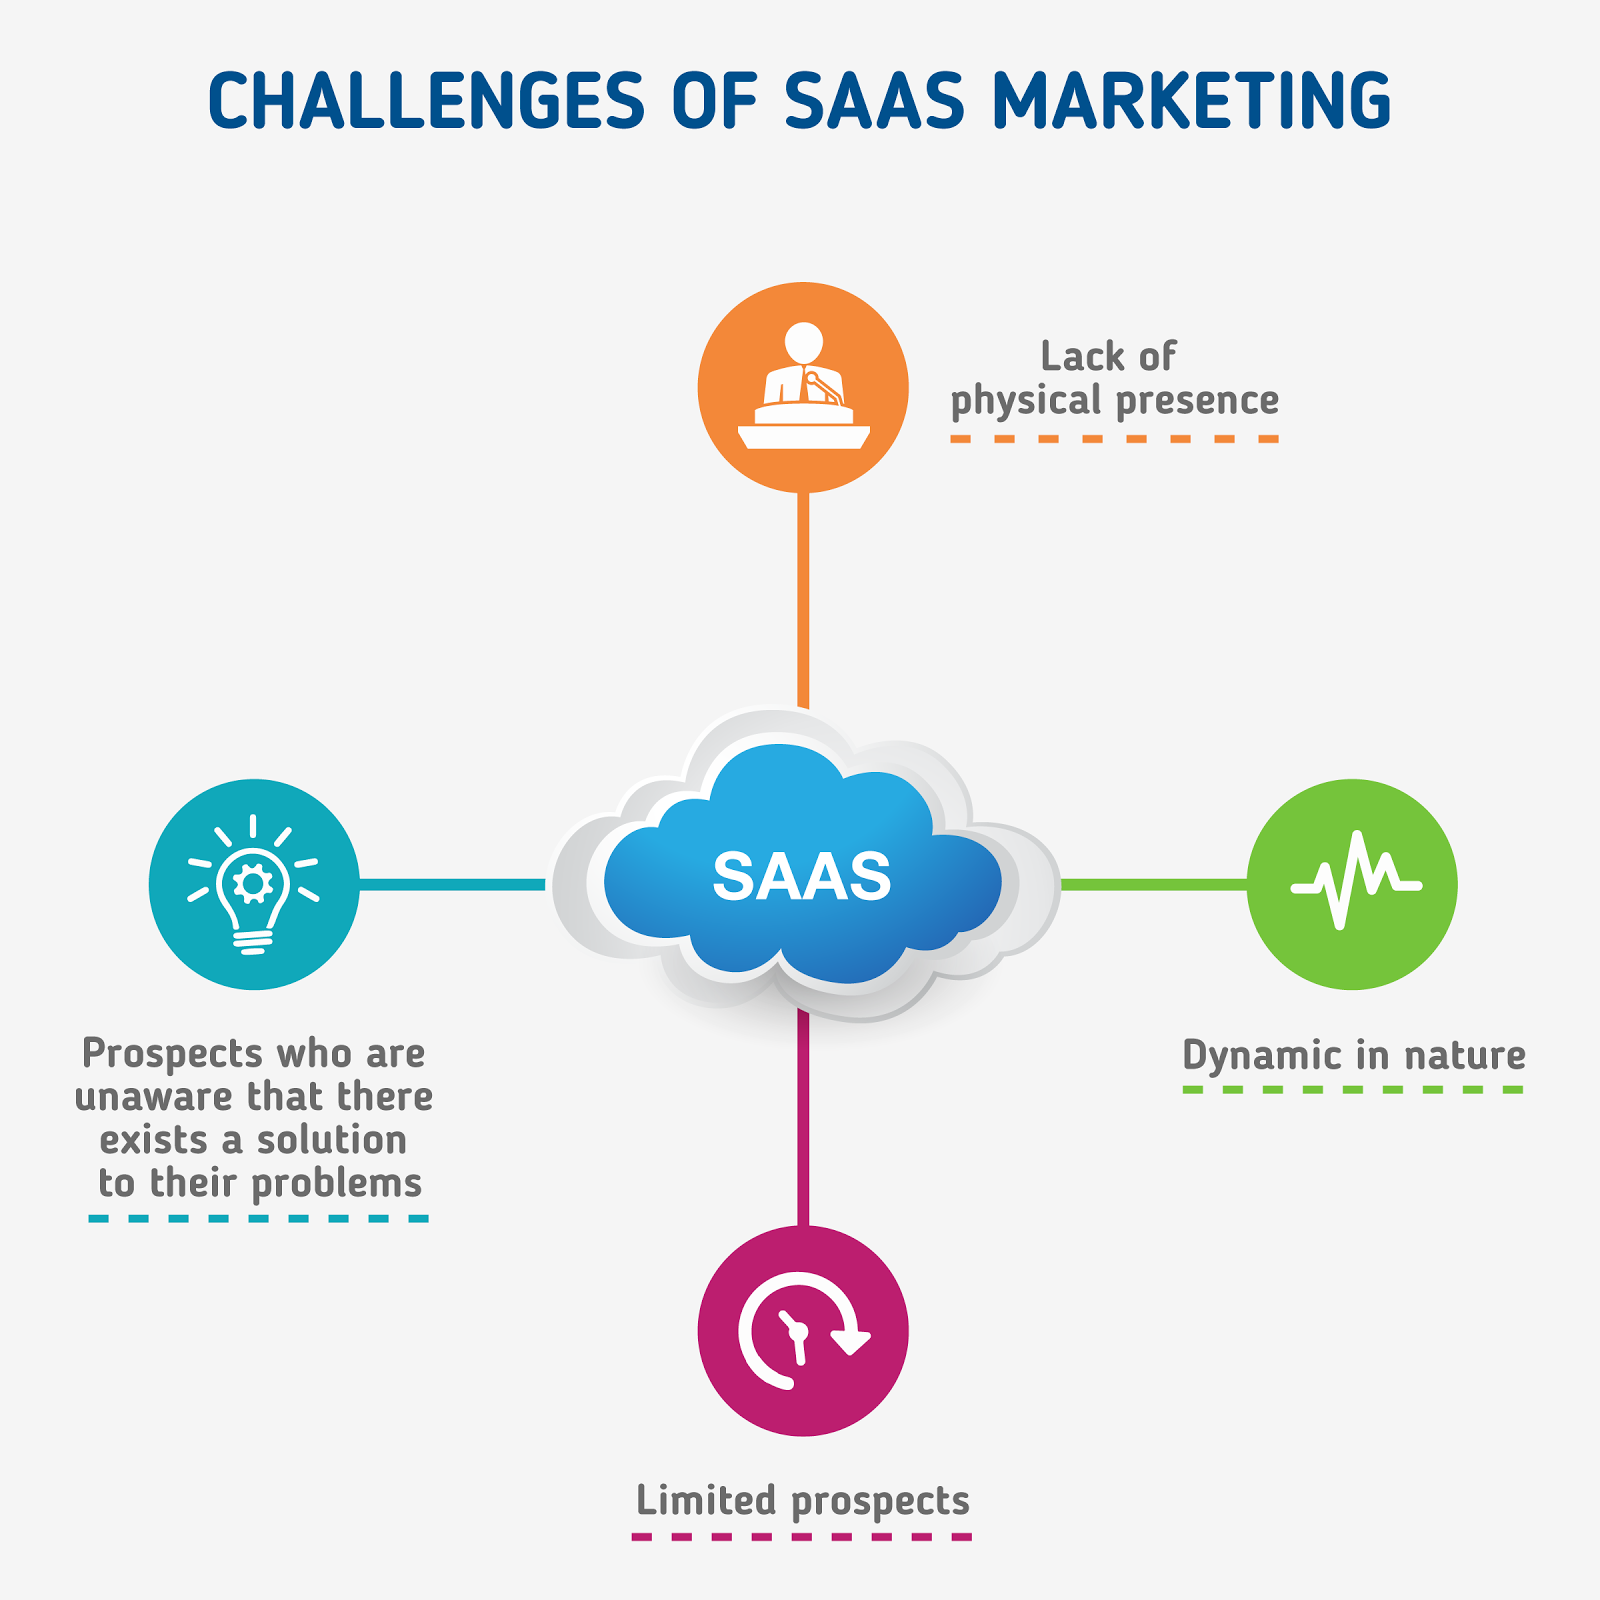 What makes SaaS Marketing different and challenges of SaaS marketing?